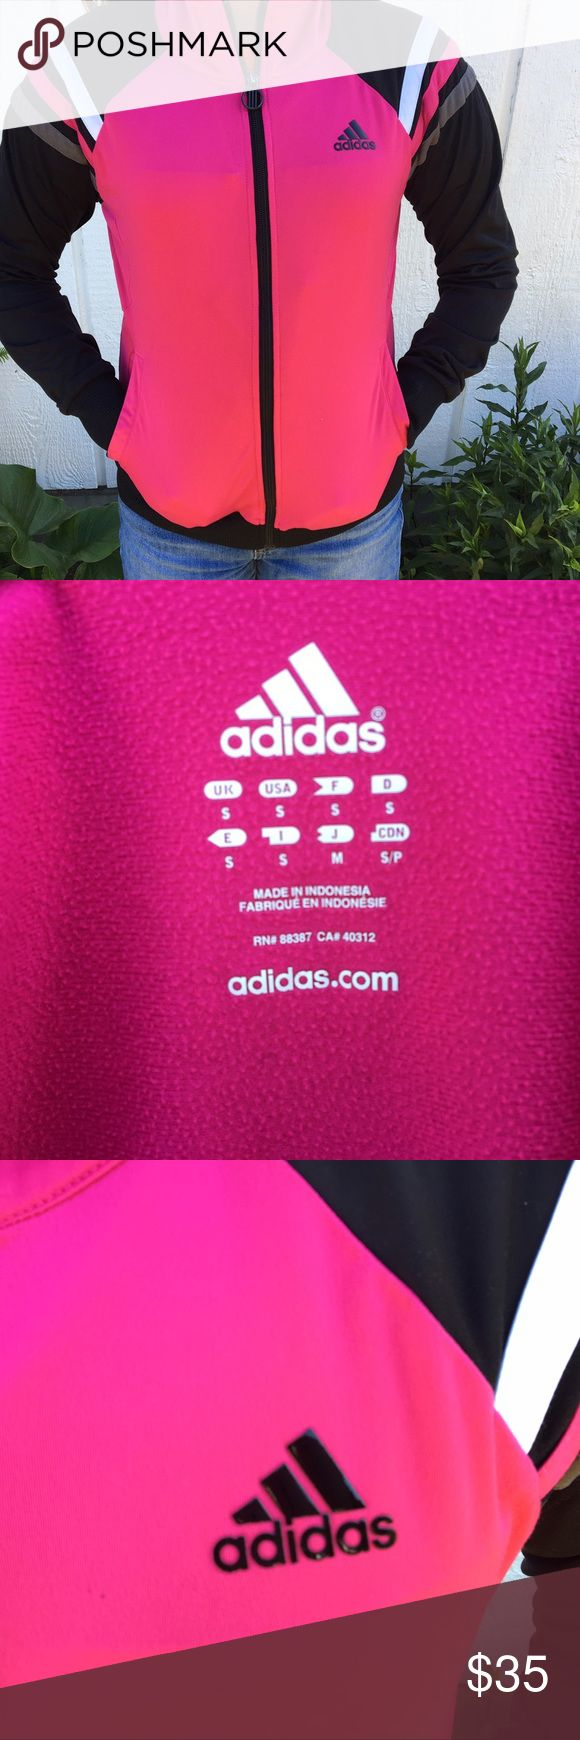 HOT PINK AND BLACK Adidas jacket brand new bright Bright pink and black adidas jacket. Size small and the pink really makes the whole jacket pop. Fits a XS/S and in excellent condition. Worn about 4 times and might be in stores by hard to find the hot pink color. Sporty material and the logo is not worn out and still glossy!! Reasonable offers will be accepted and price is negotiable! adidas Jackets & Coats